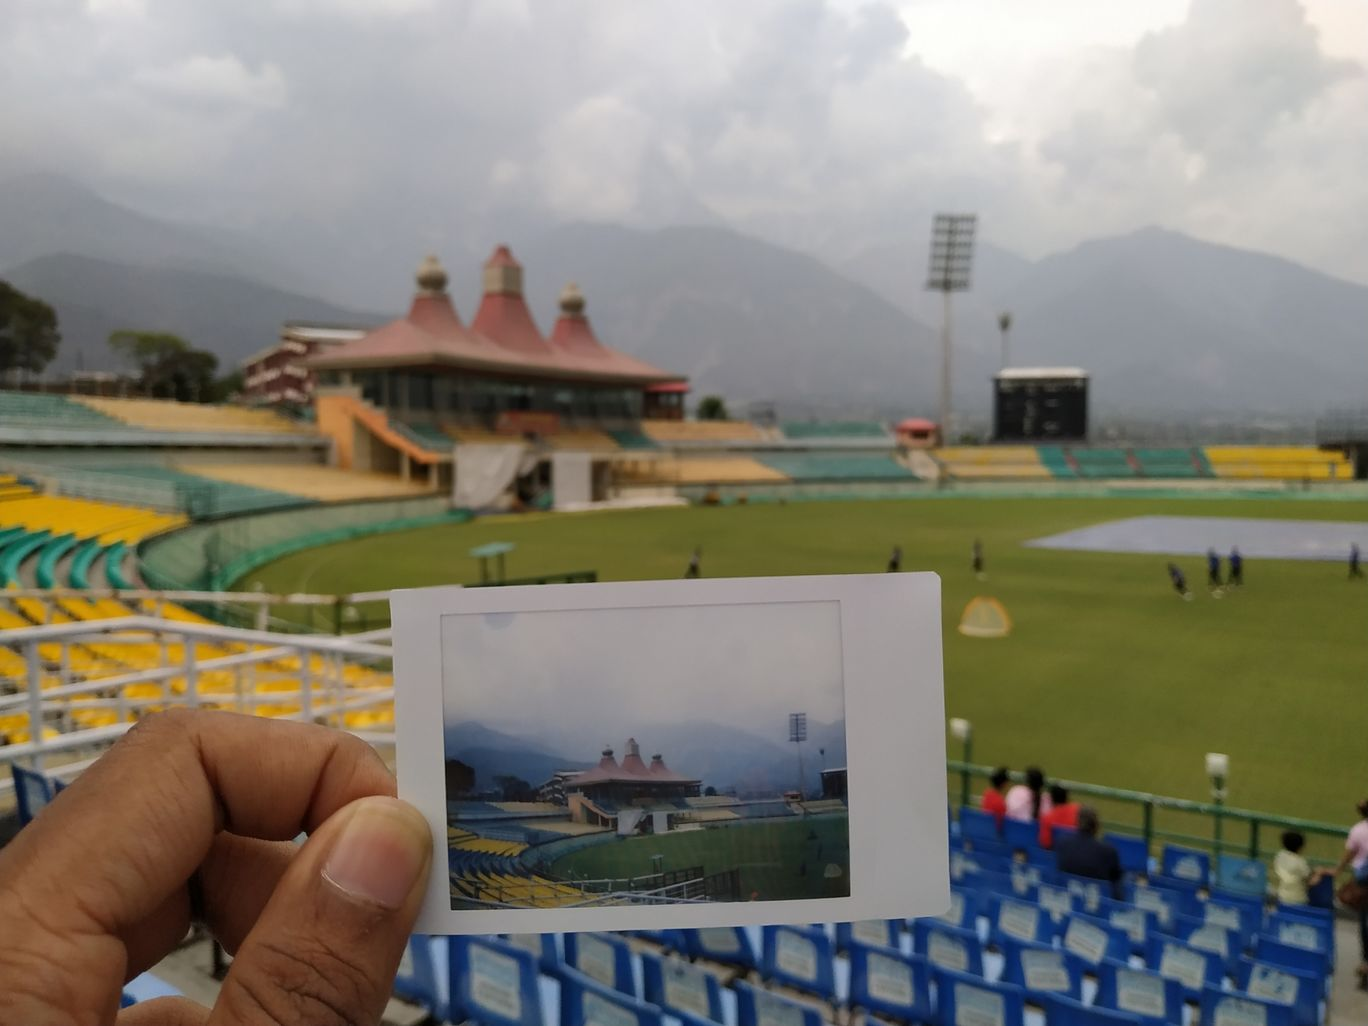 Photo of Himachal Pradesh Cricket Association Stadium Dharamshala By Siddharth Shankar